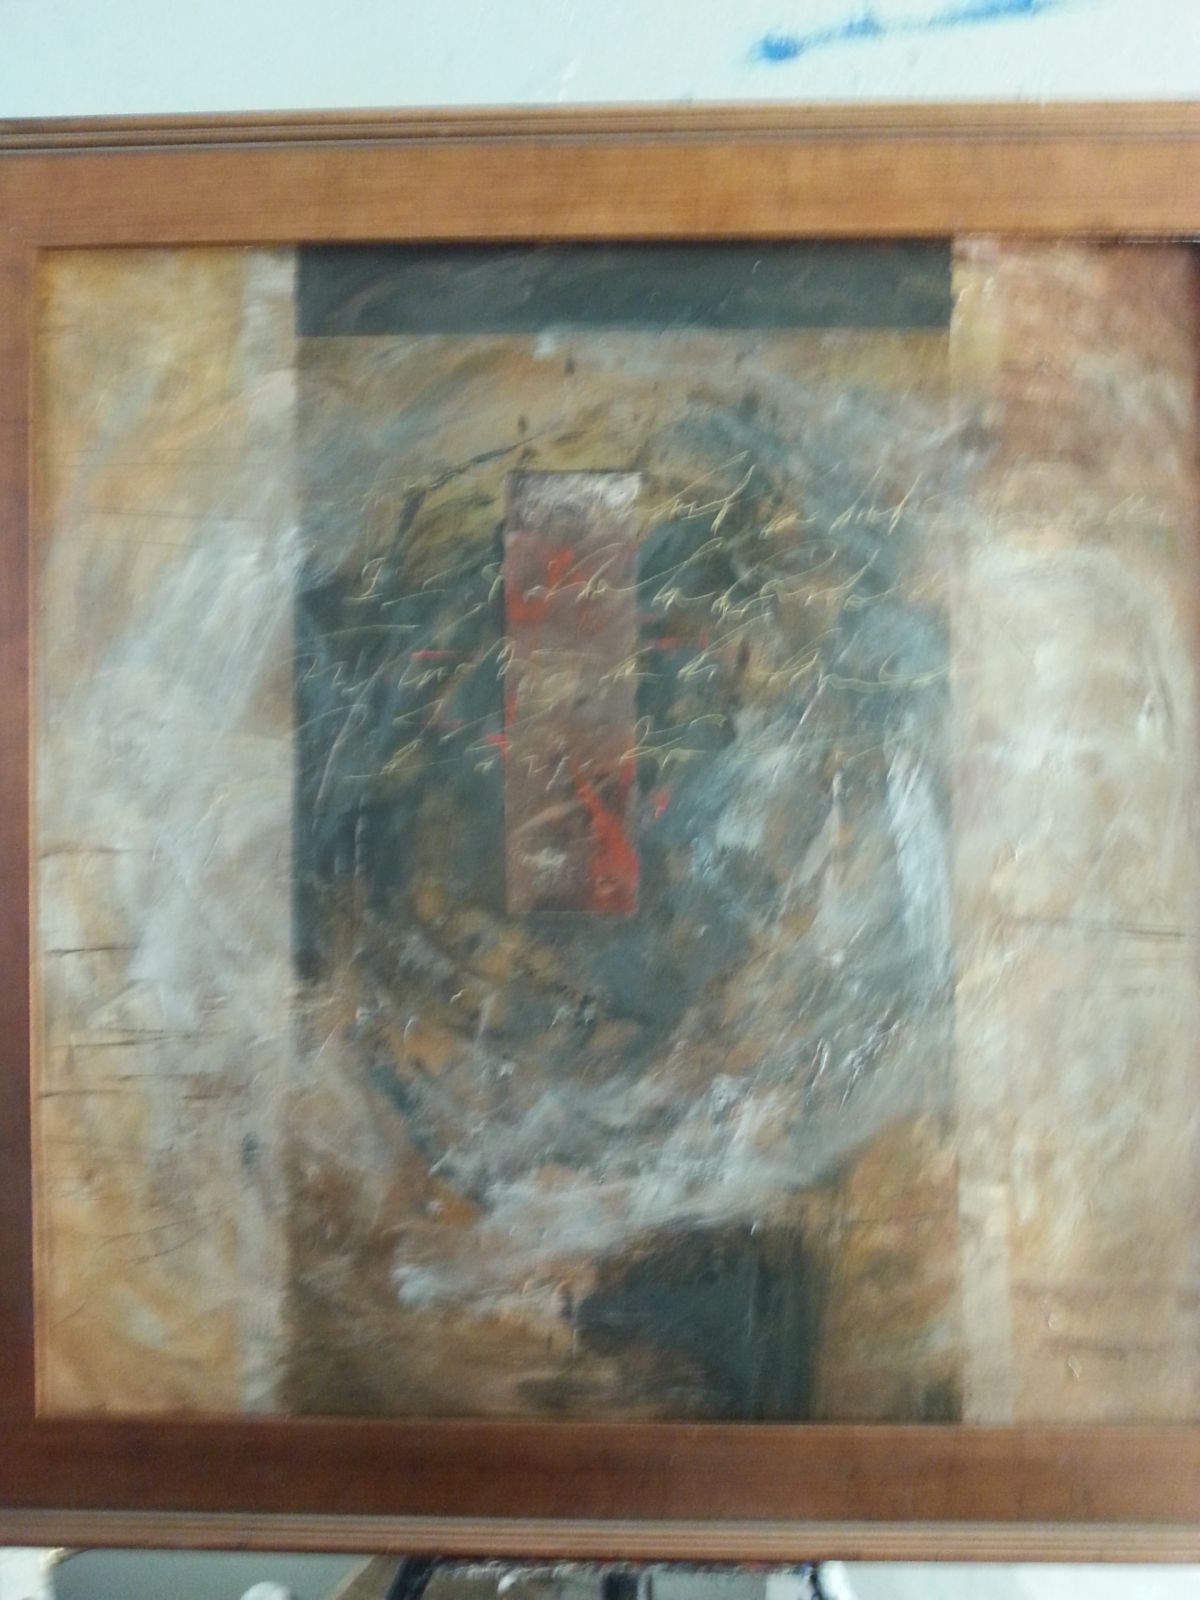 Abstract 2 artwork by Robert Brasher - art listed for sale on Artplode